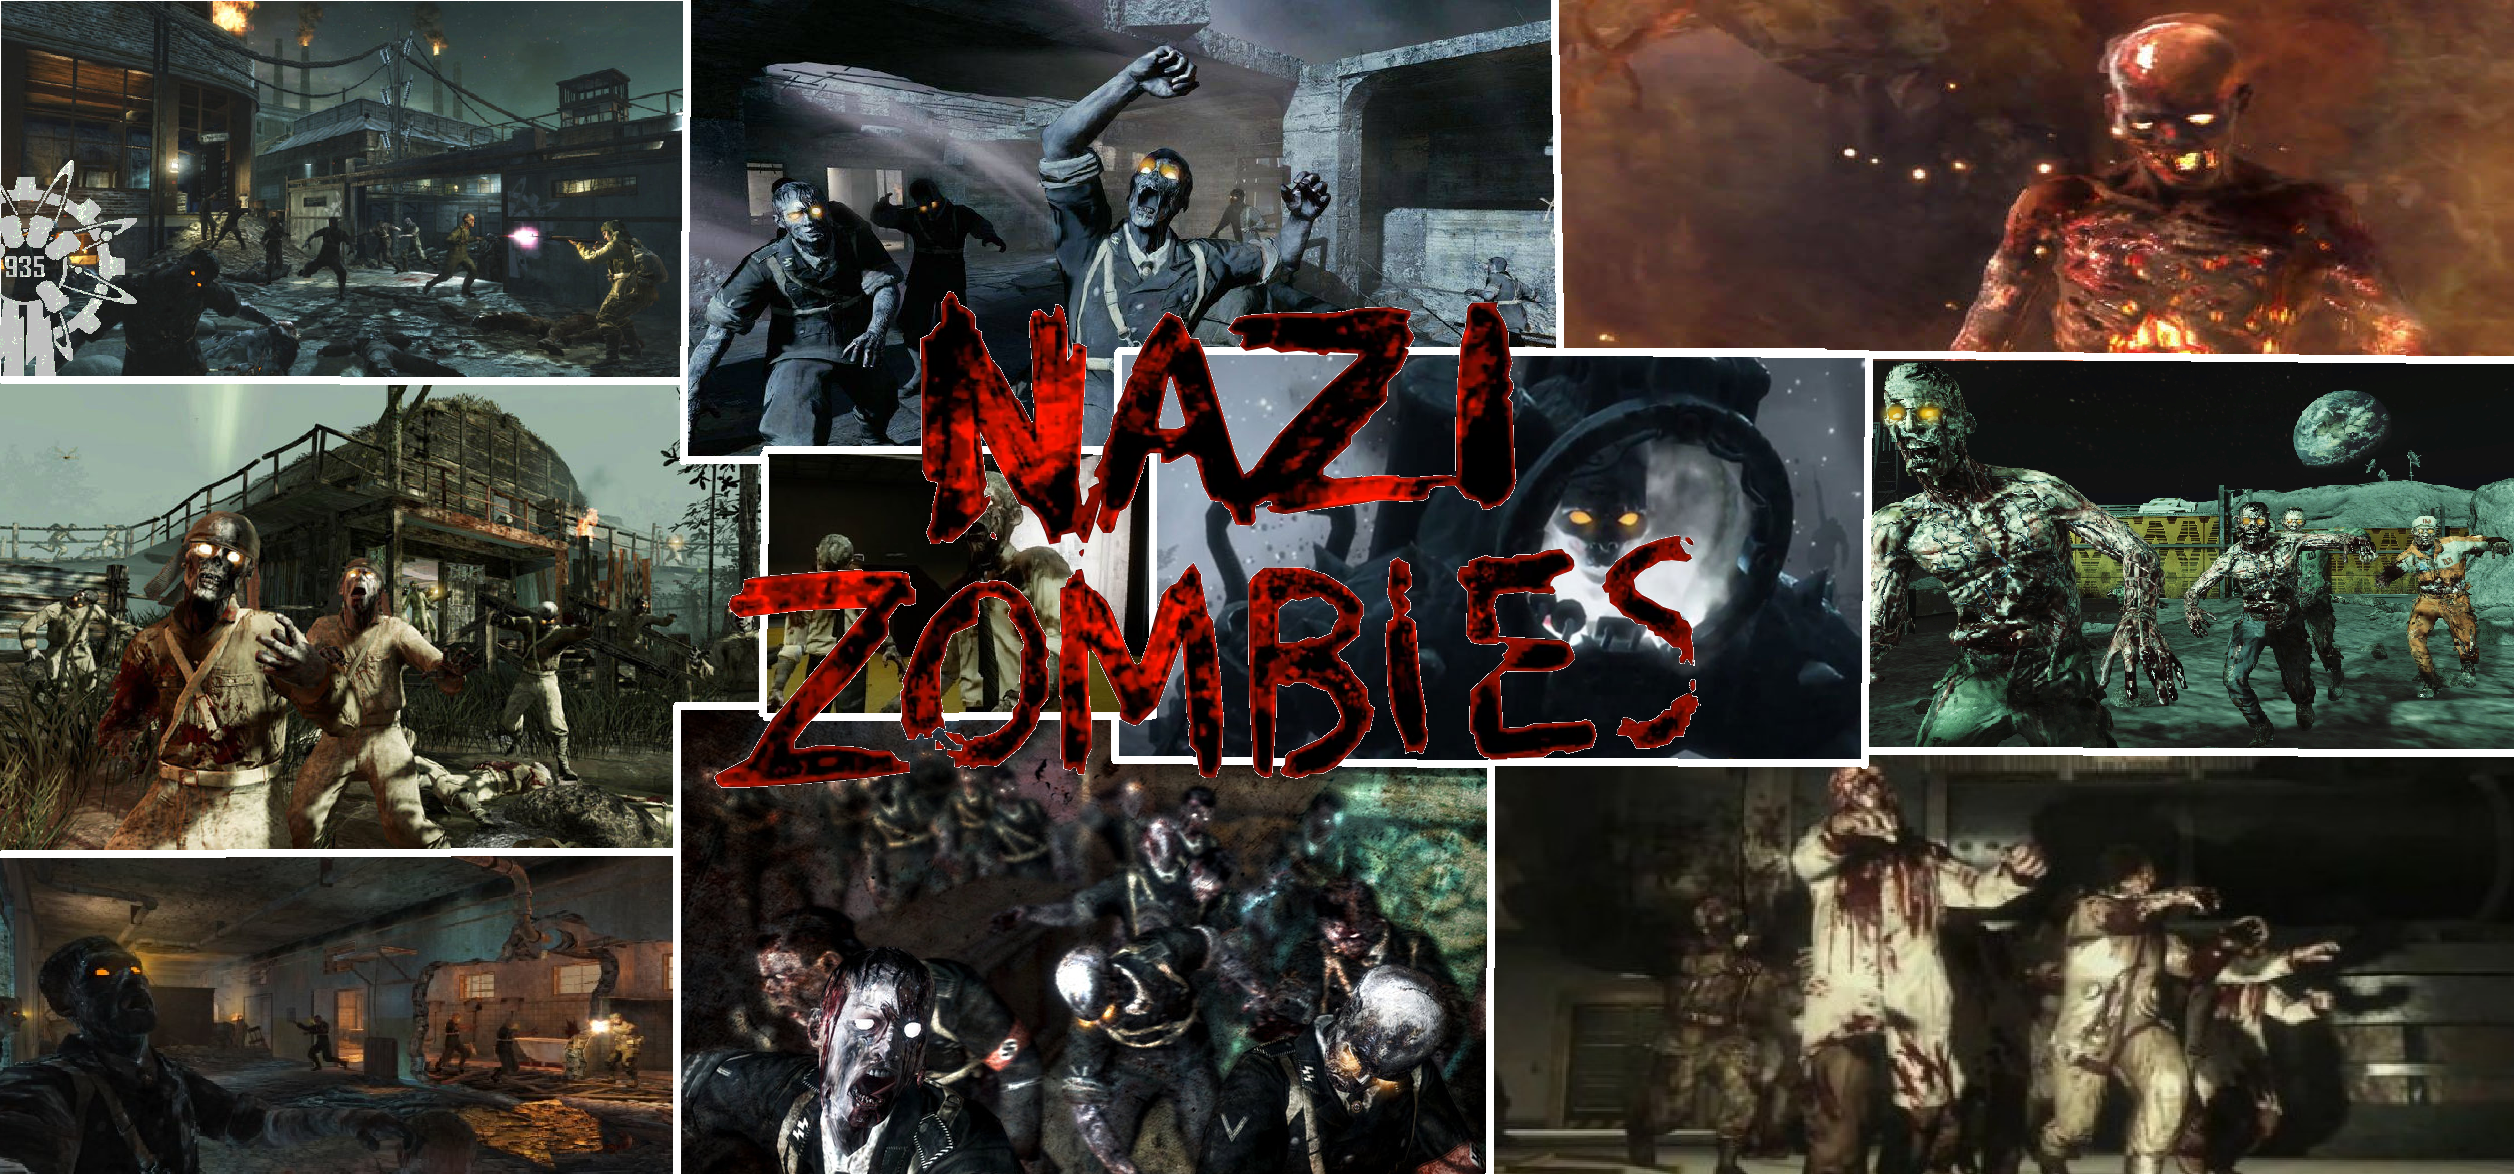 Call Of Duty Zombies Wallpapers: Nazi Zombies Wallpaper By NaziZombiesKiller On DeviantArt